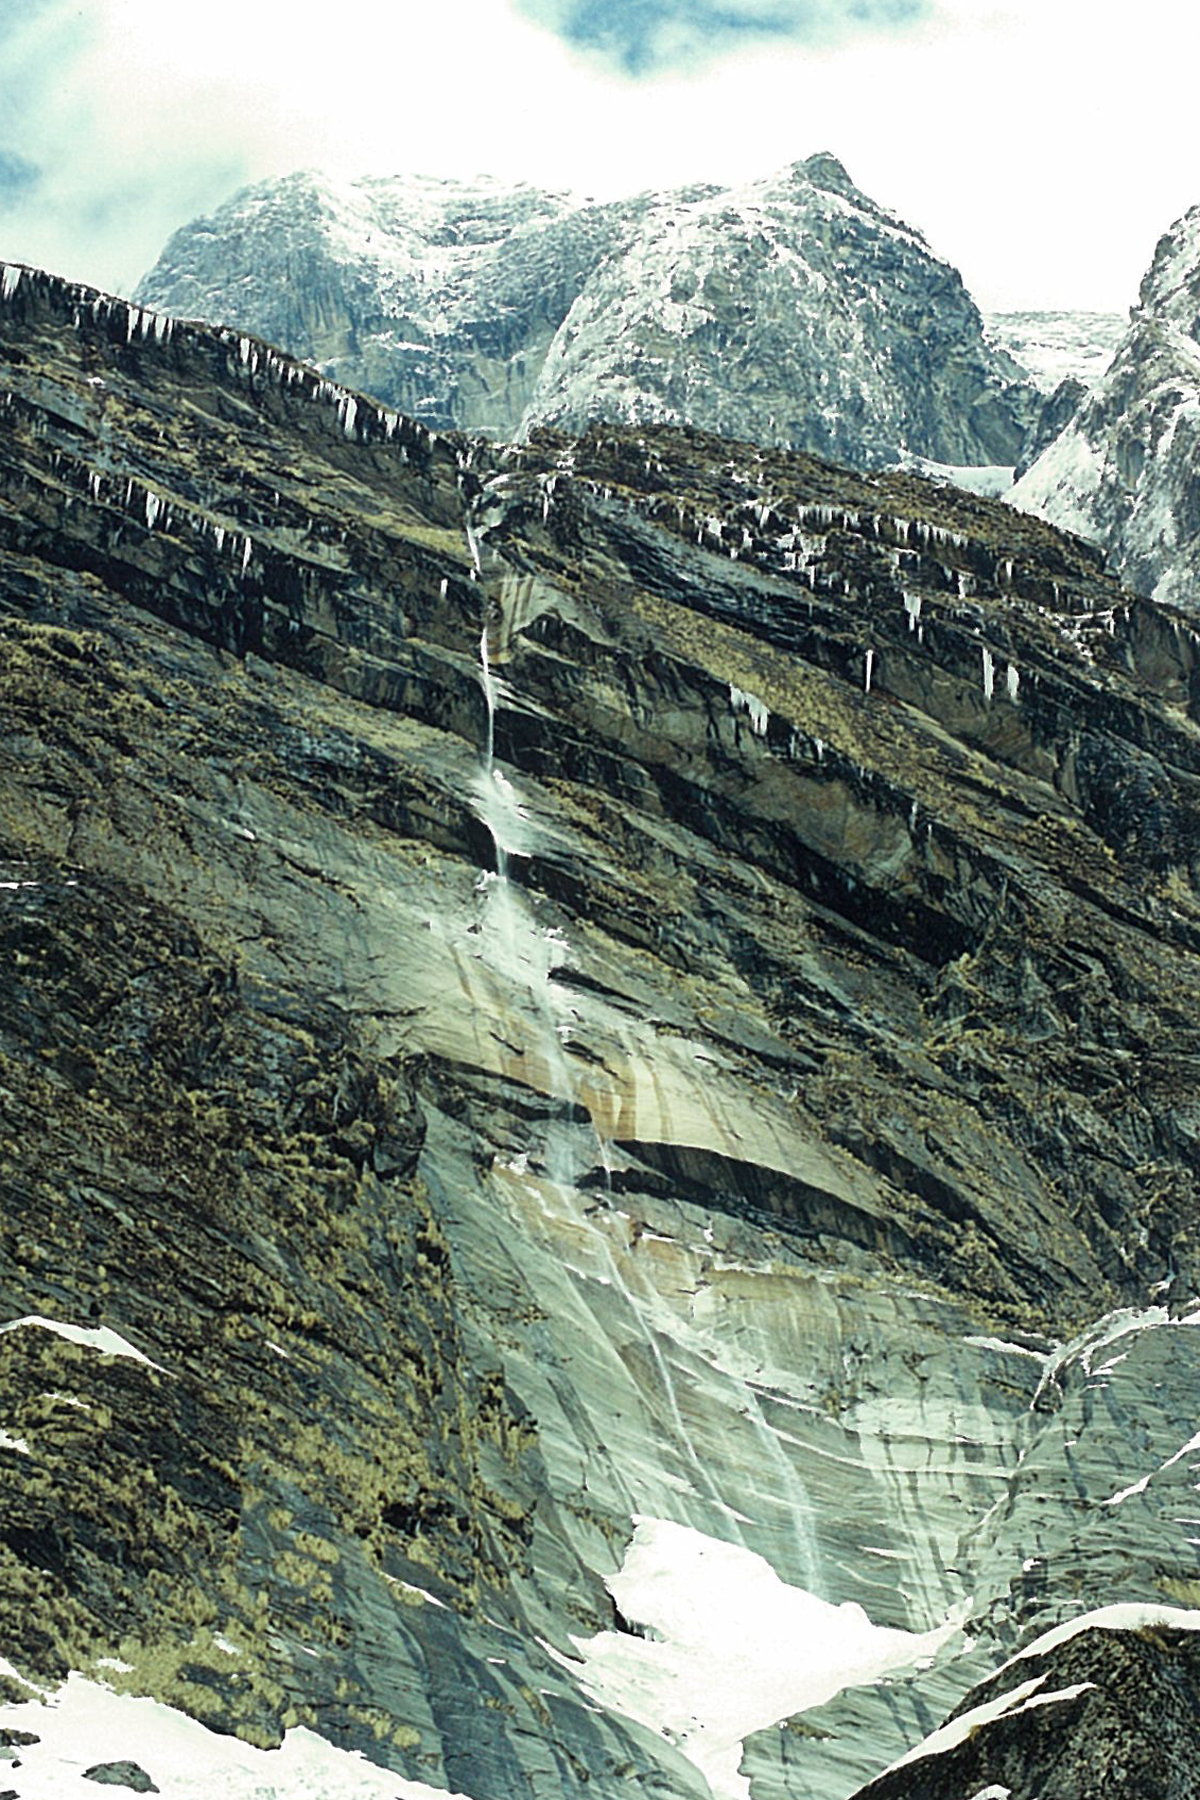 Icy Cliffs Annapurna Base Camp Trek ABC Sanctuary Trekking Hike Hiking Nepal